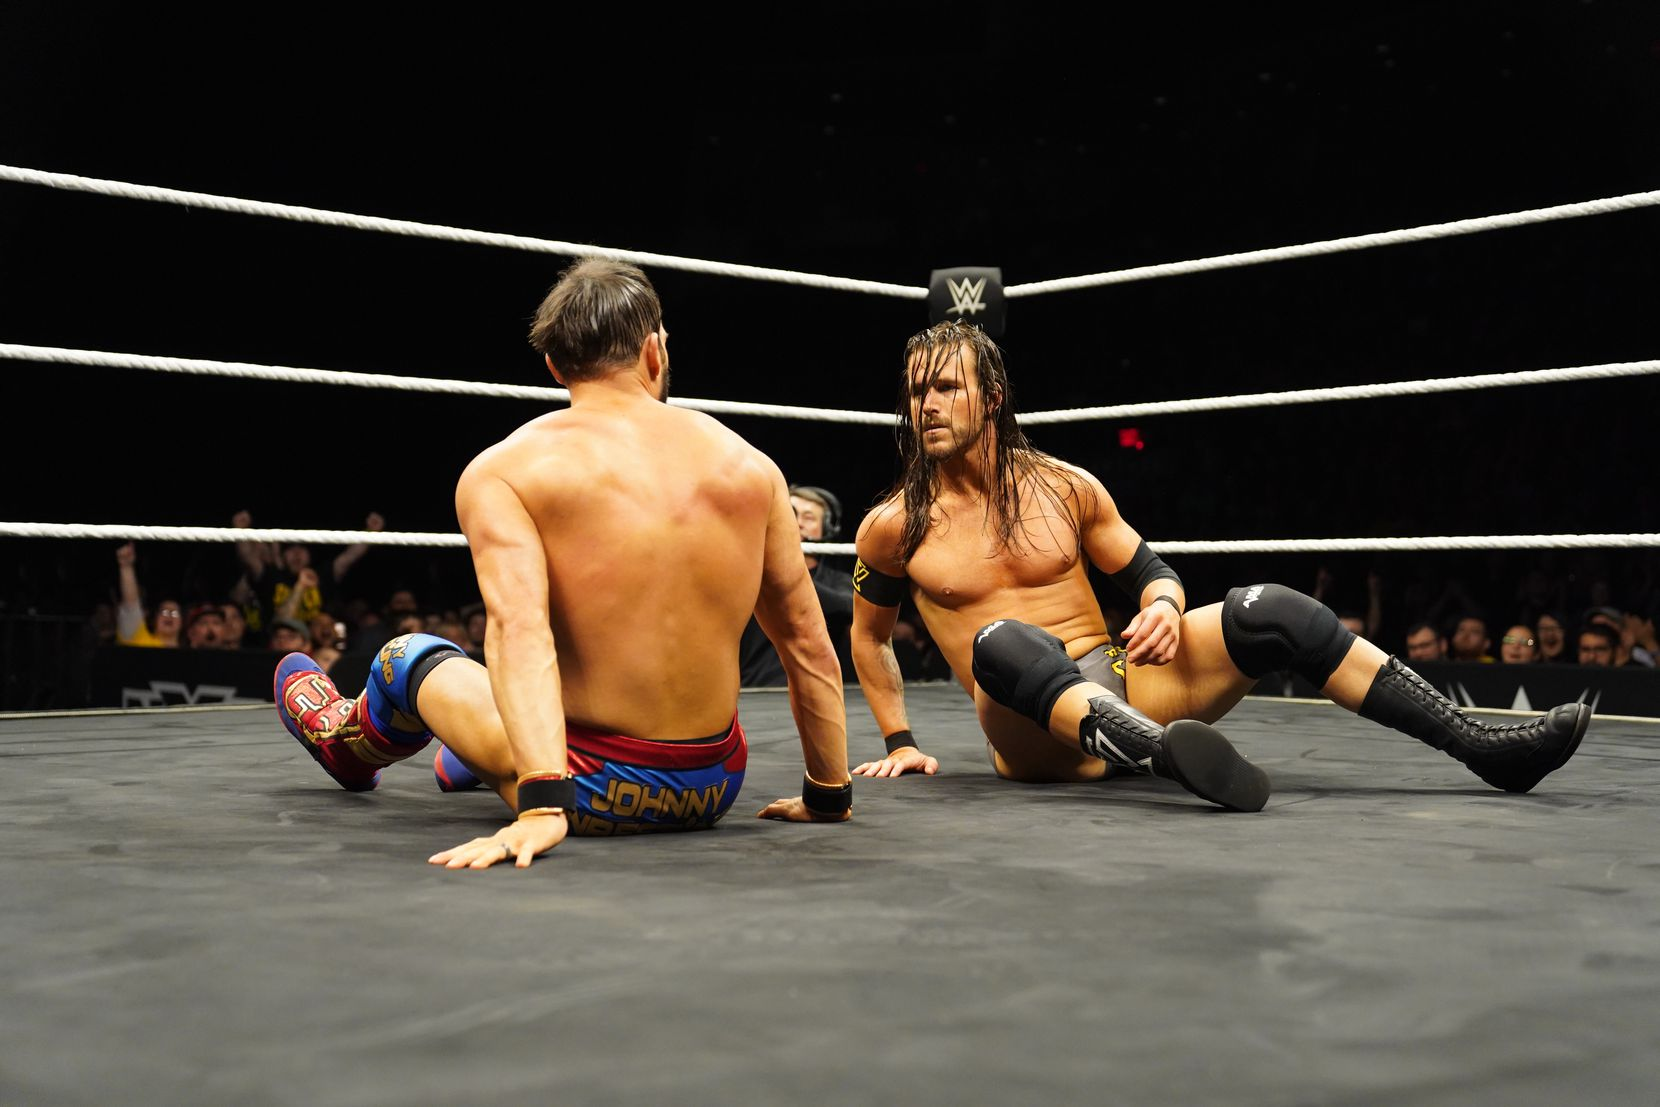 Adam Cole and Johnny Gargano stare each other down during their NXT championship match at NXT: TakeOver XXV